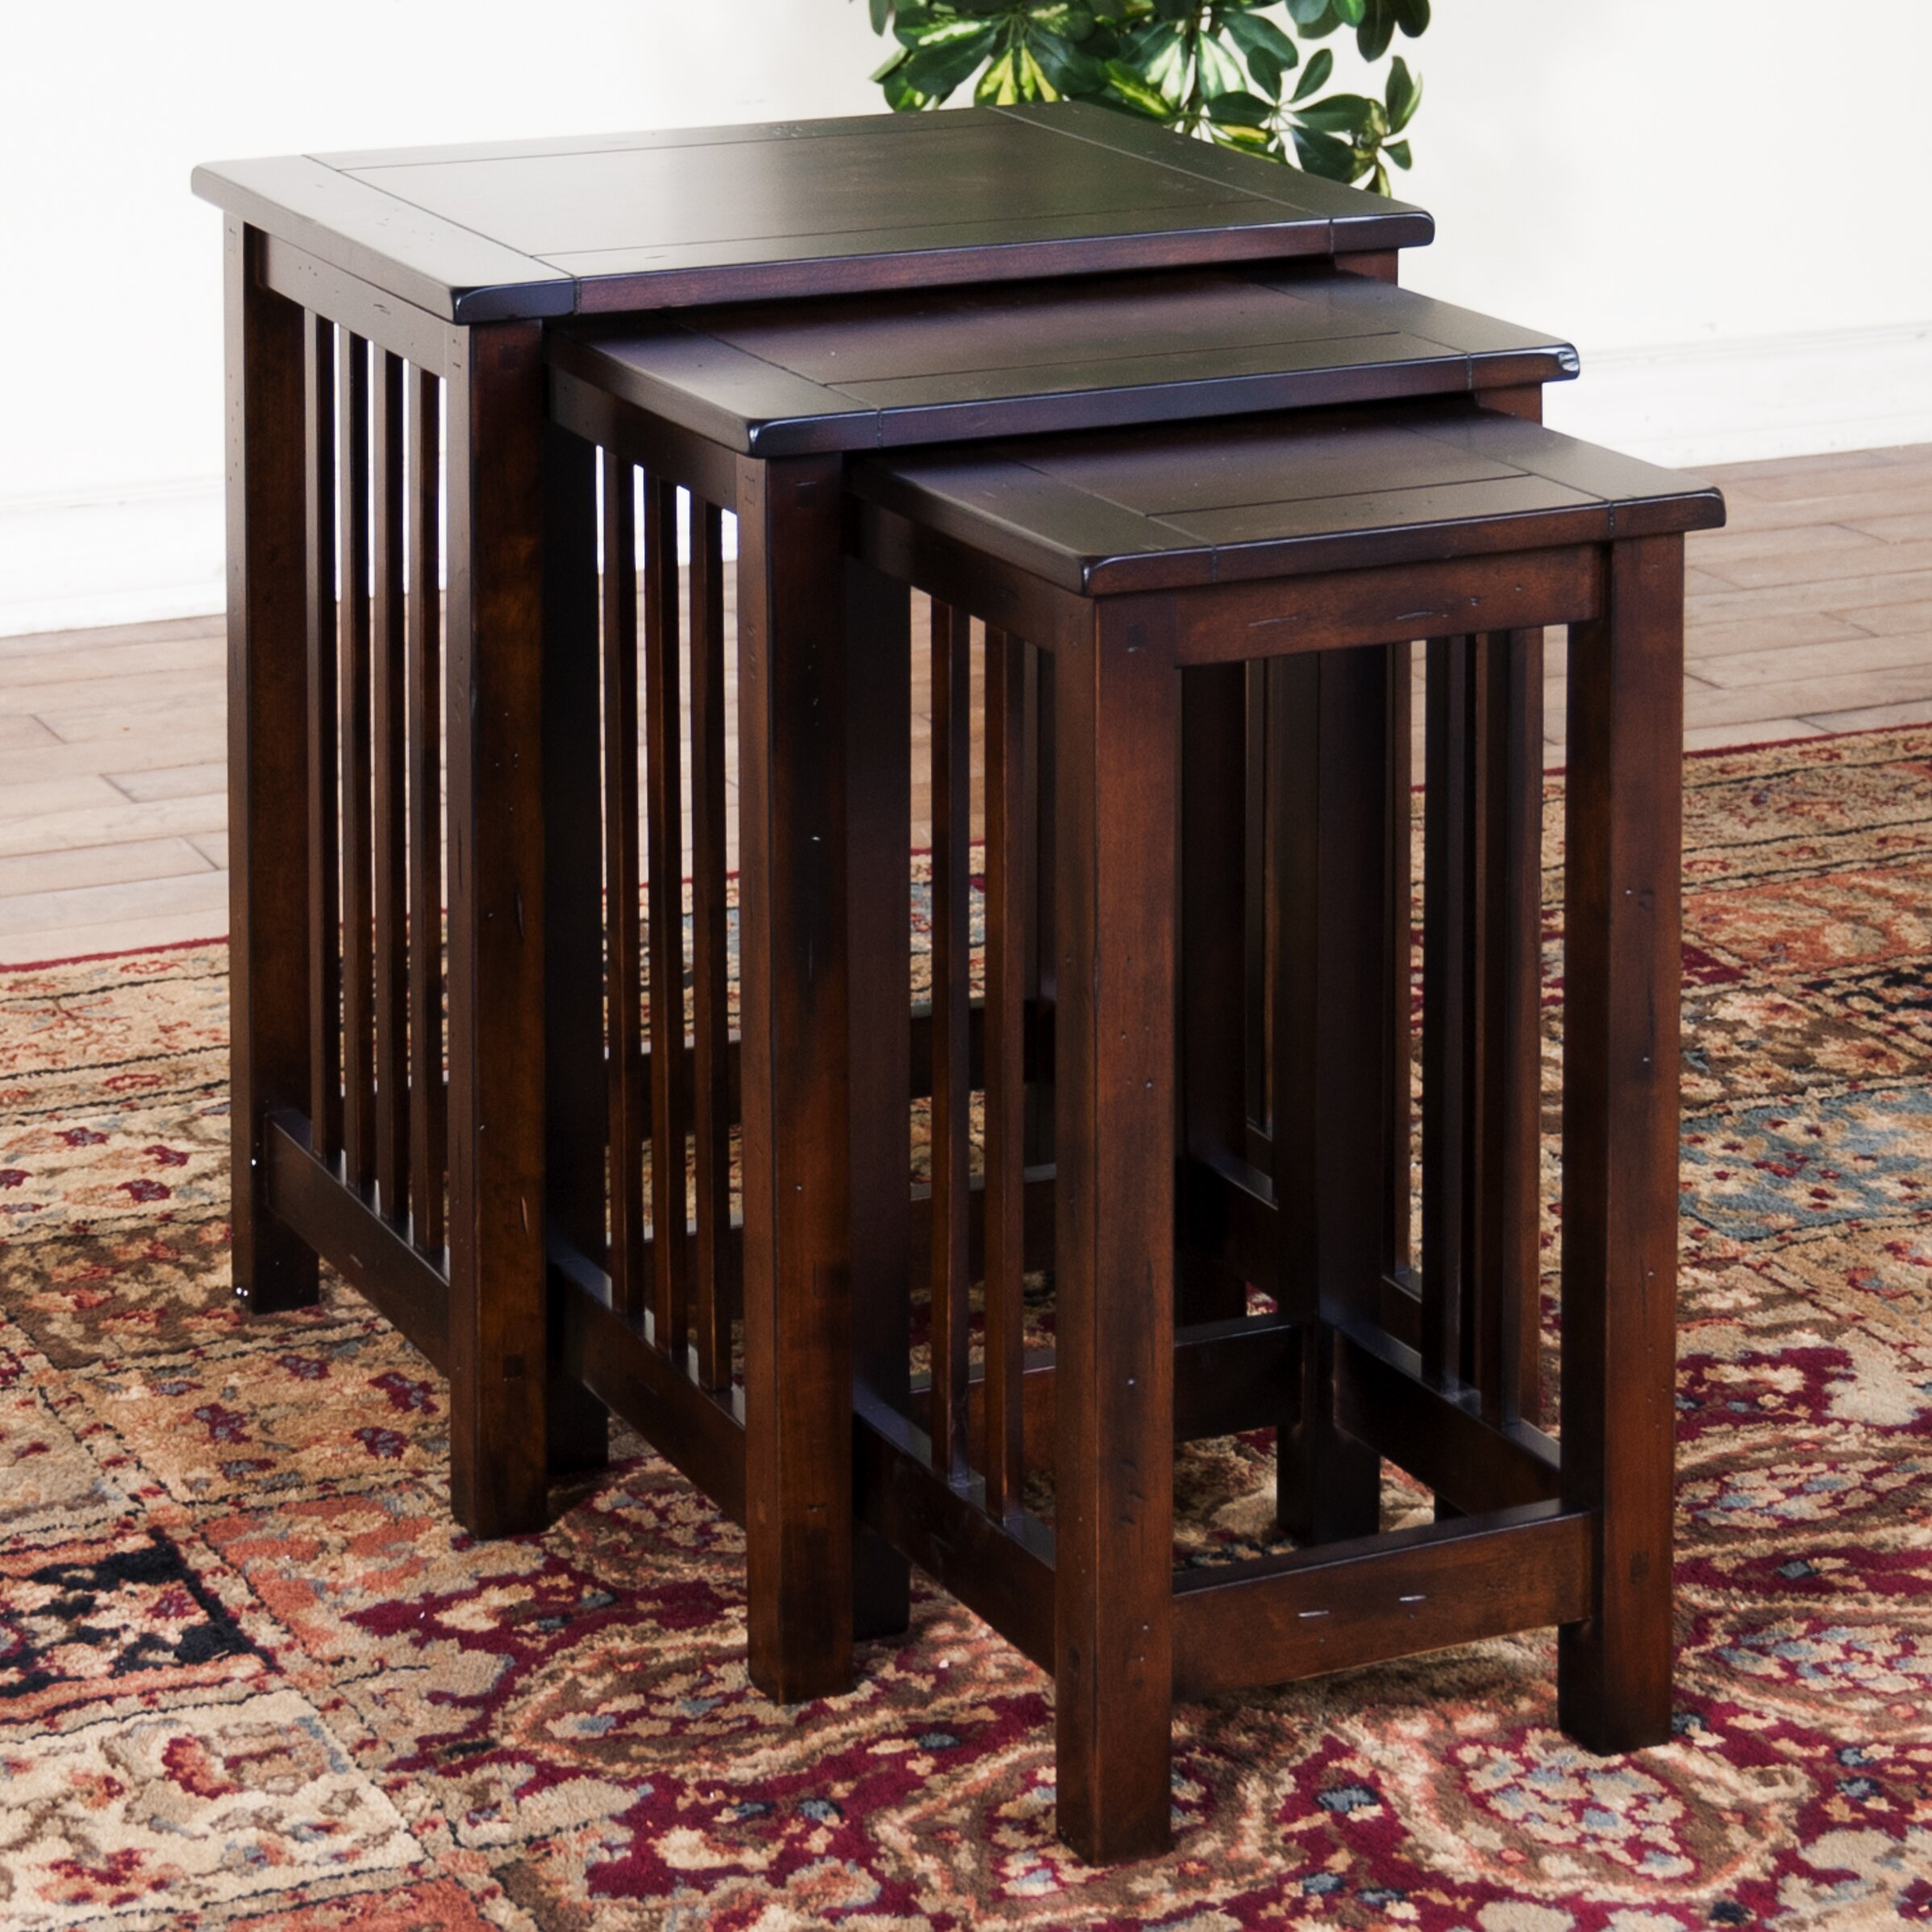 Sunny Designs Santa Fe 3 Piece Nesting Tables Amp Reviews